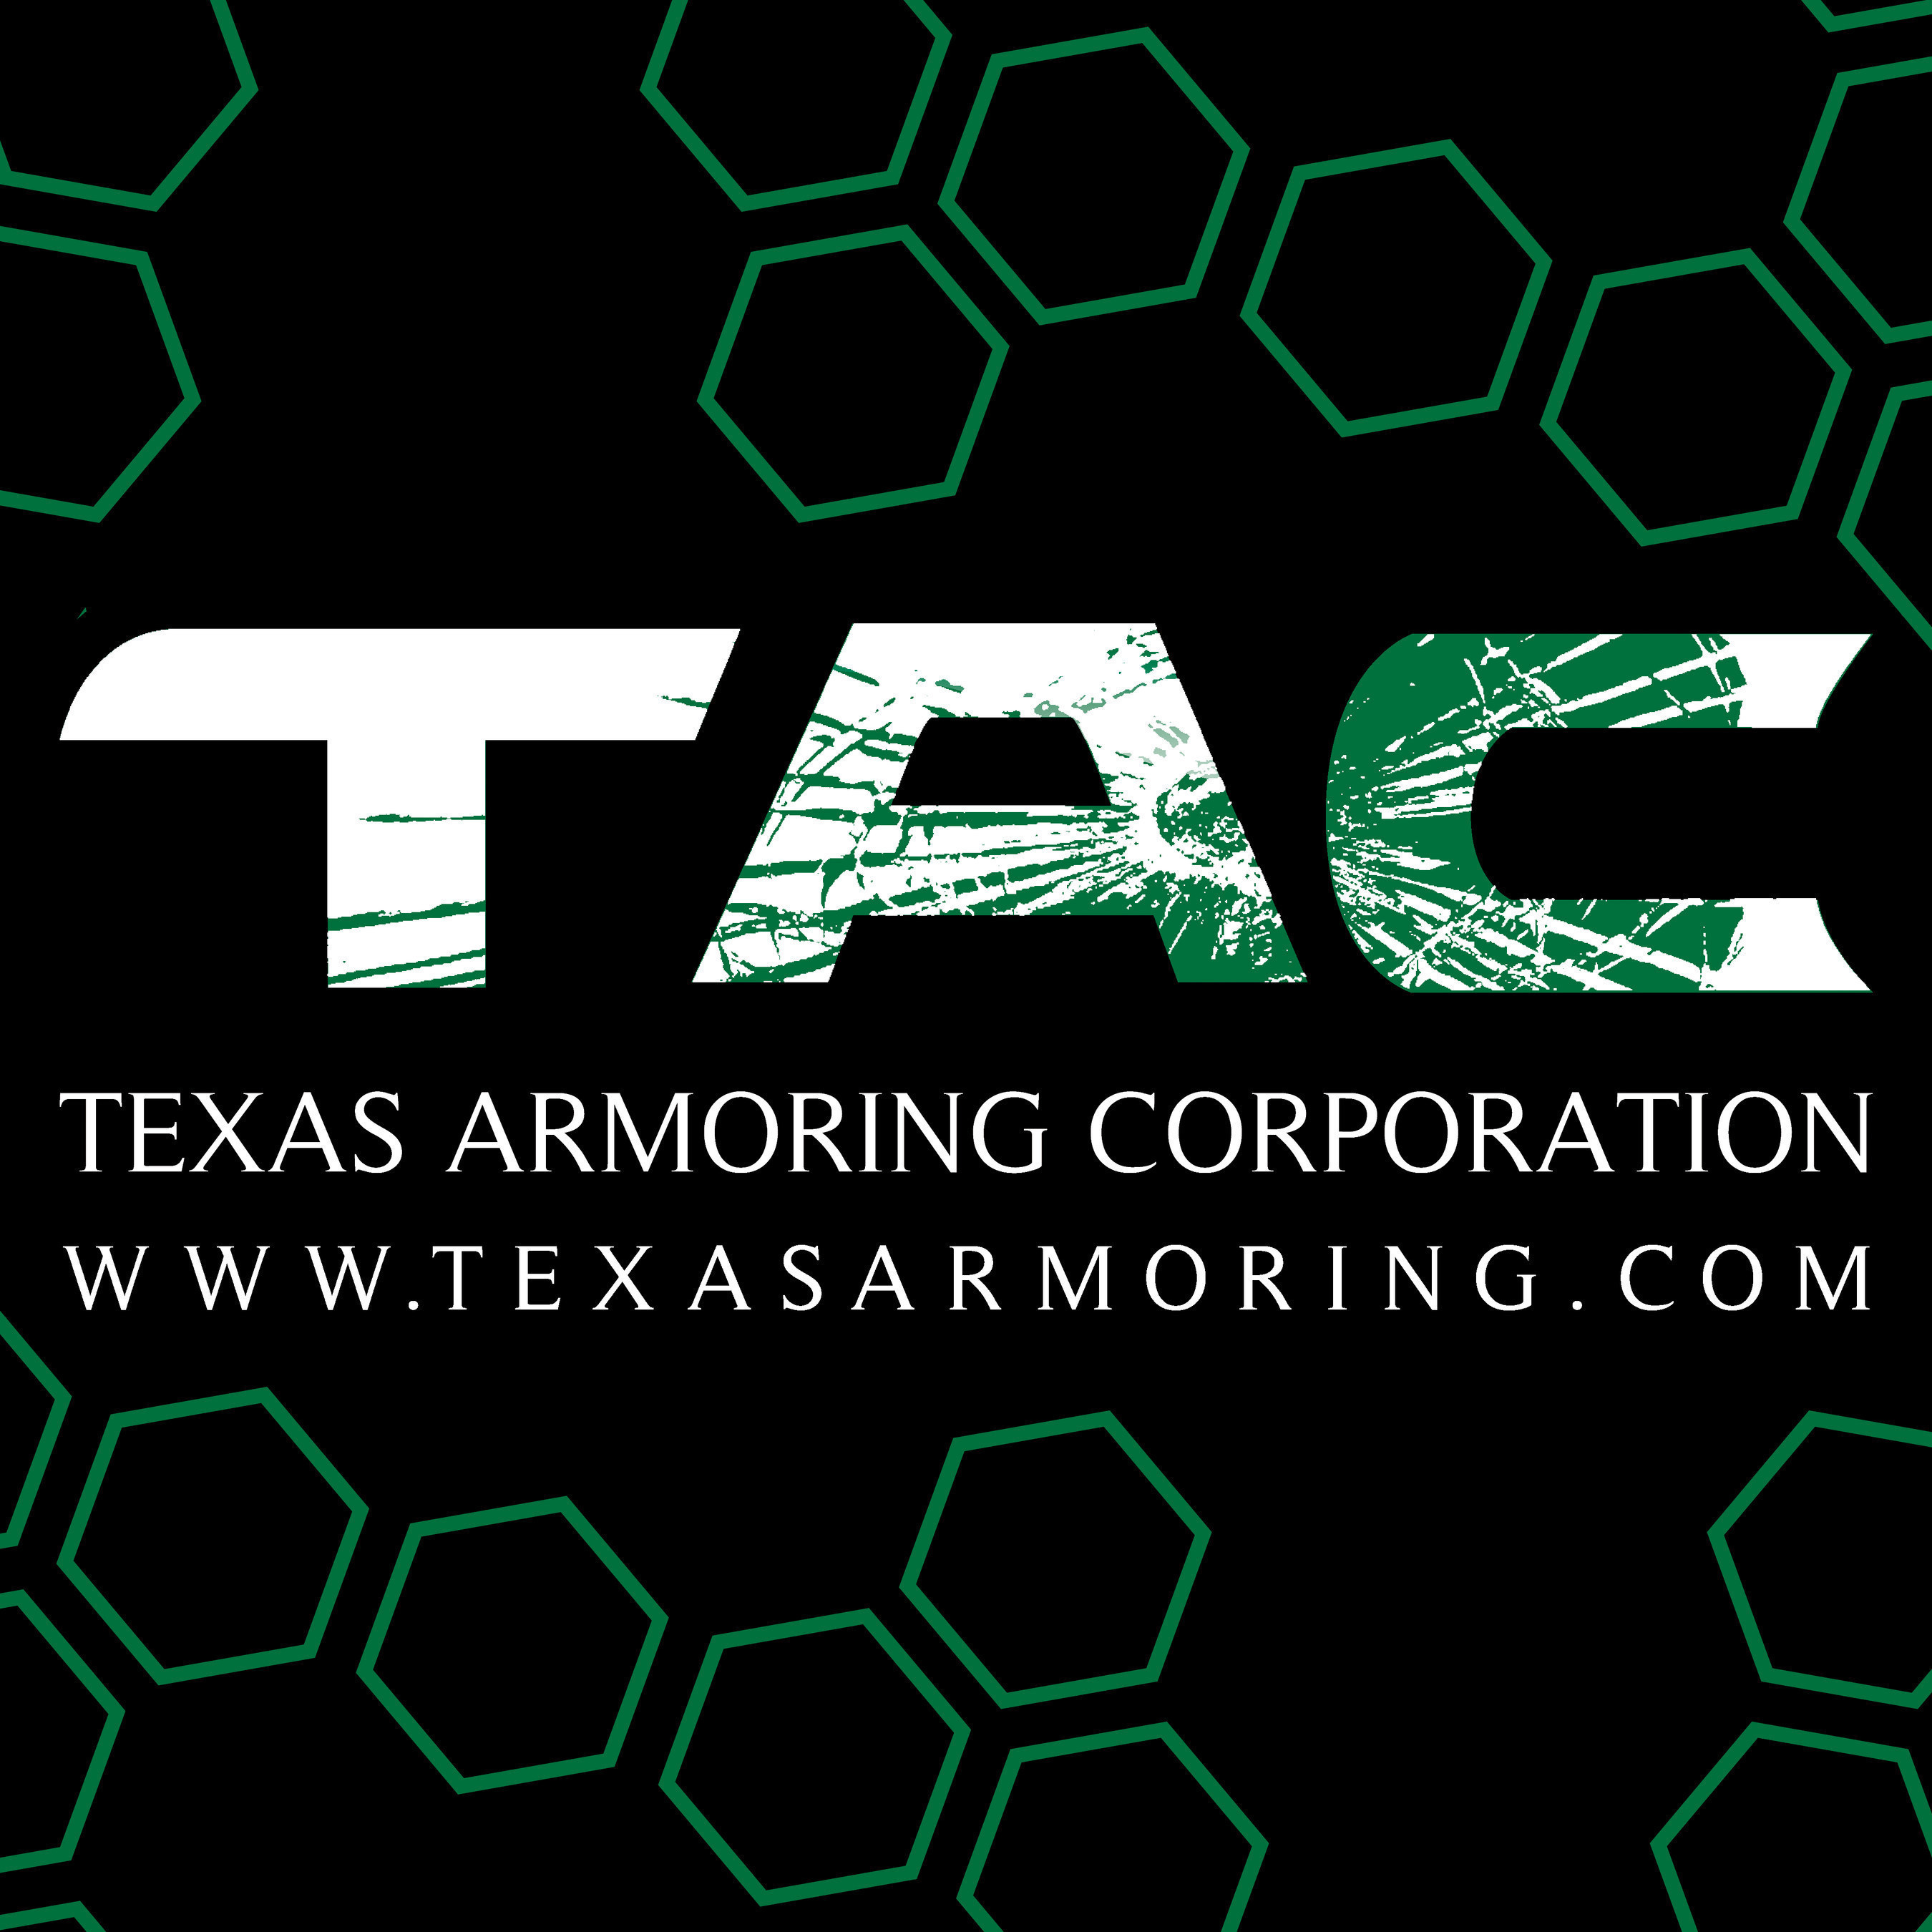 Texas Armoring Corporation www.texasarmoring.com